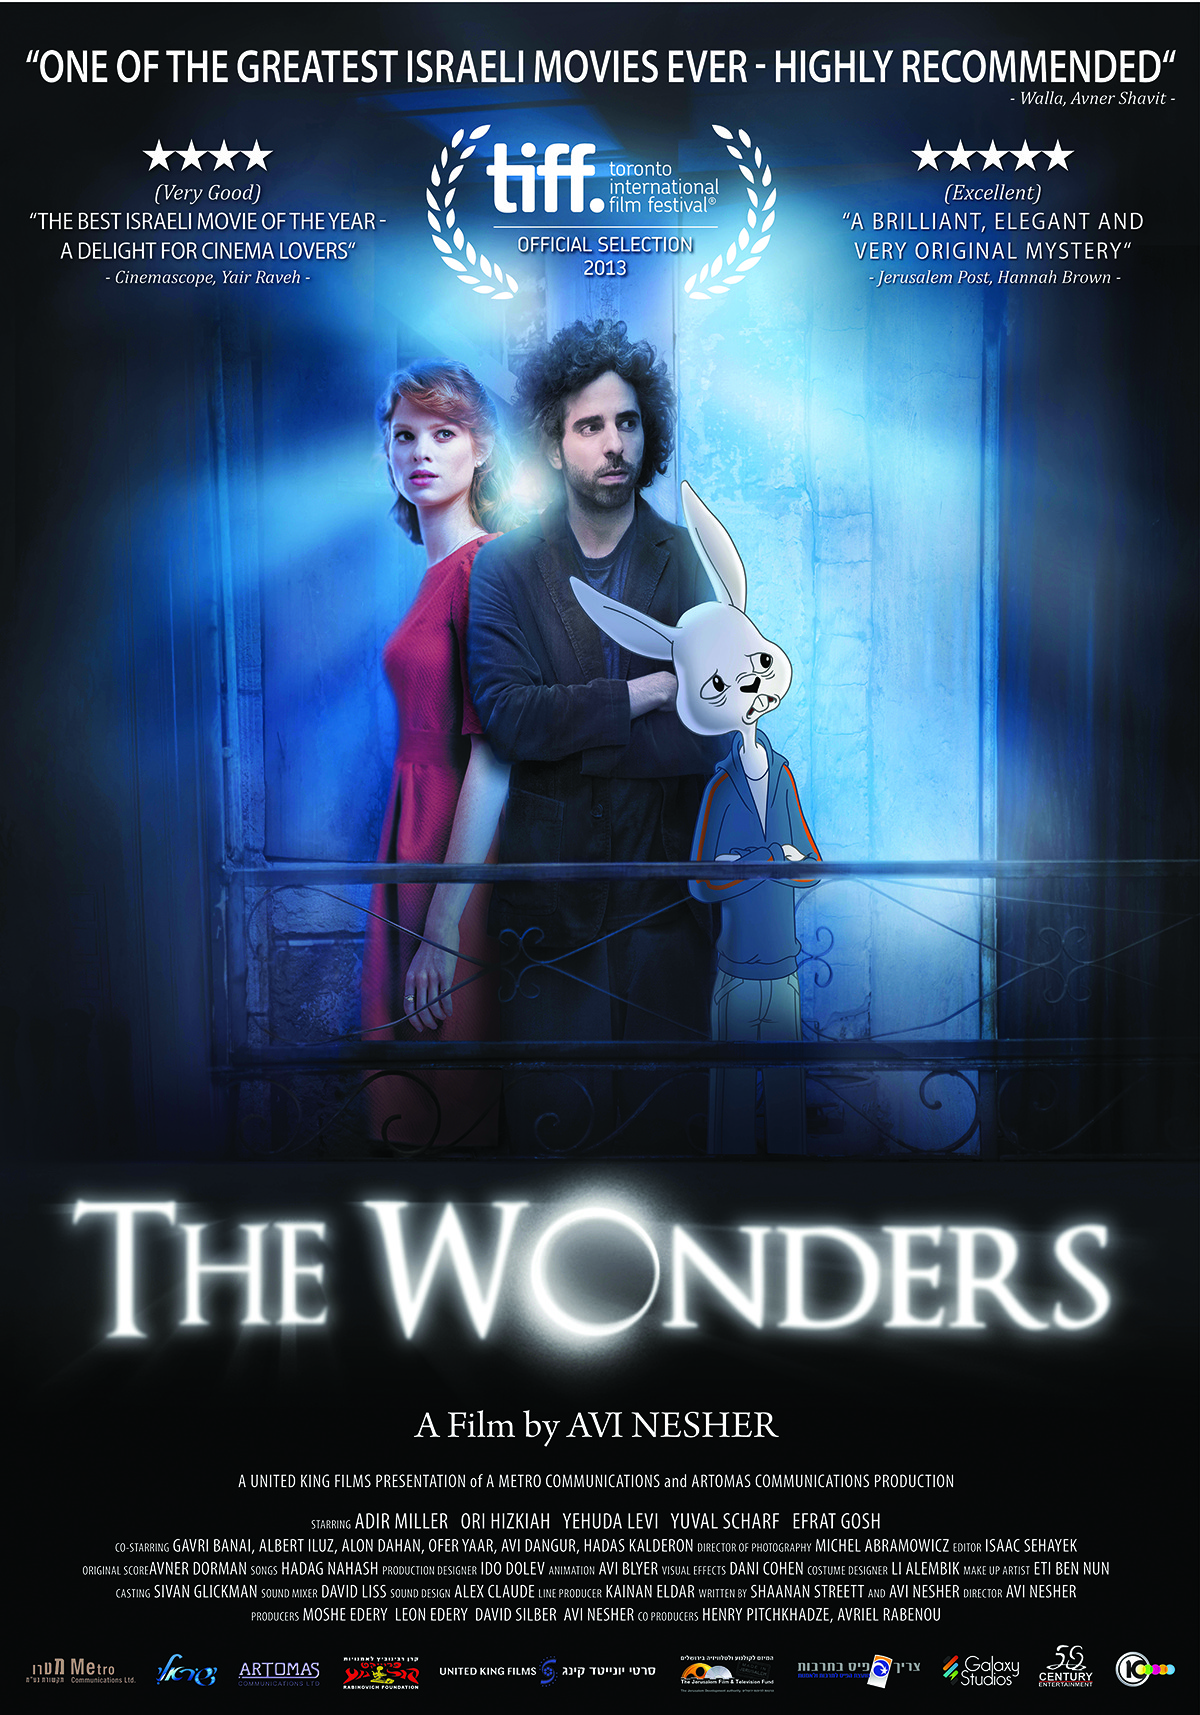 47bb7e9141ea2483731a_The_Wonders_film_poster.jpg